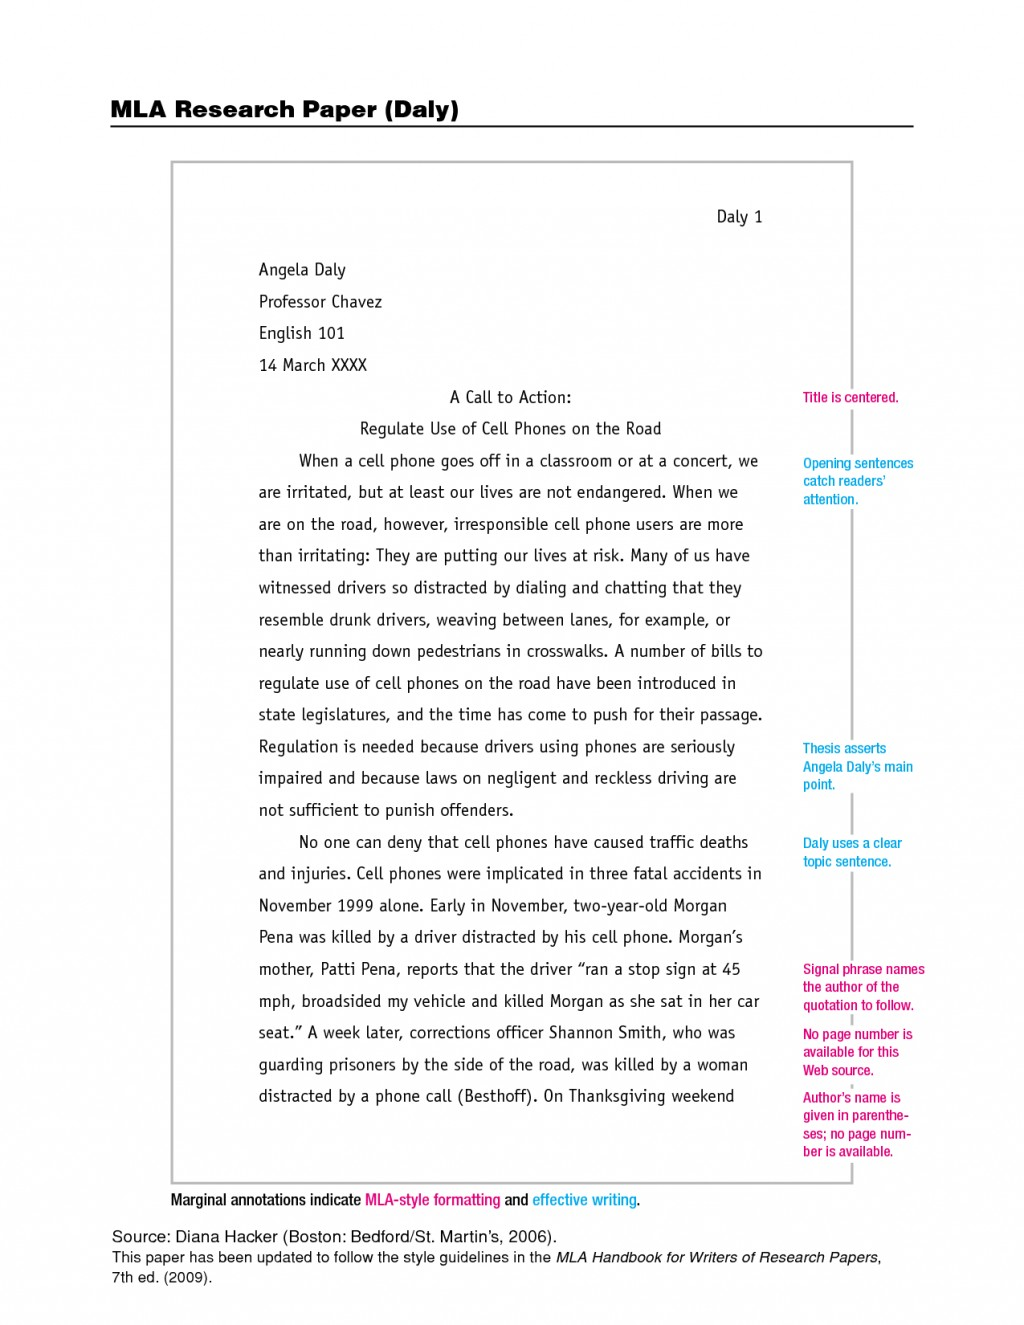 007 Mla Format Research Paper Section Breathtaking Headings Heading Spacing Large